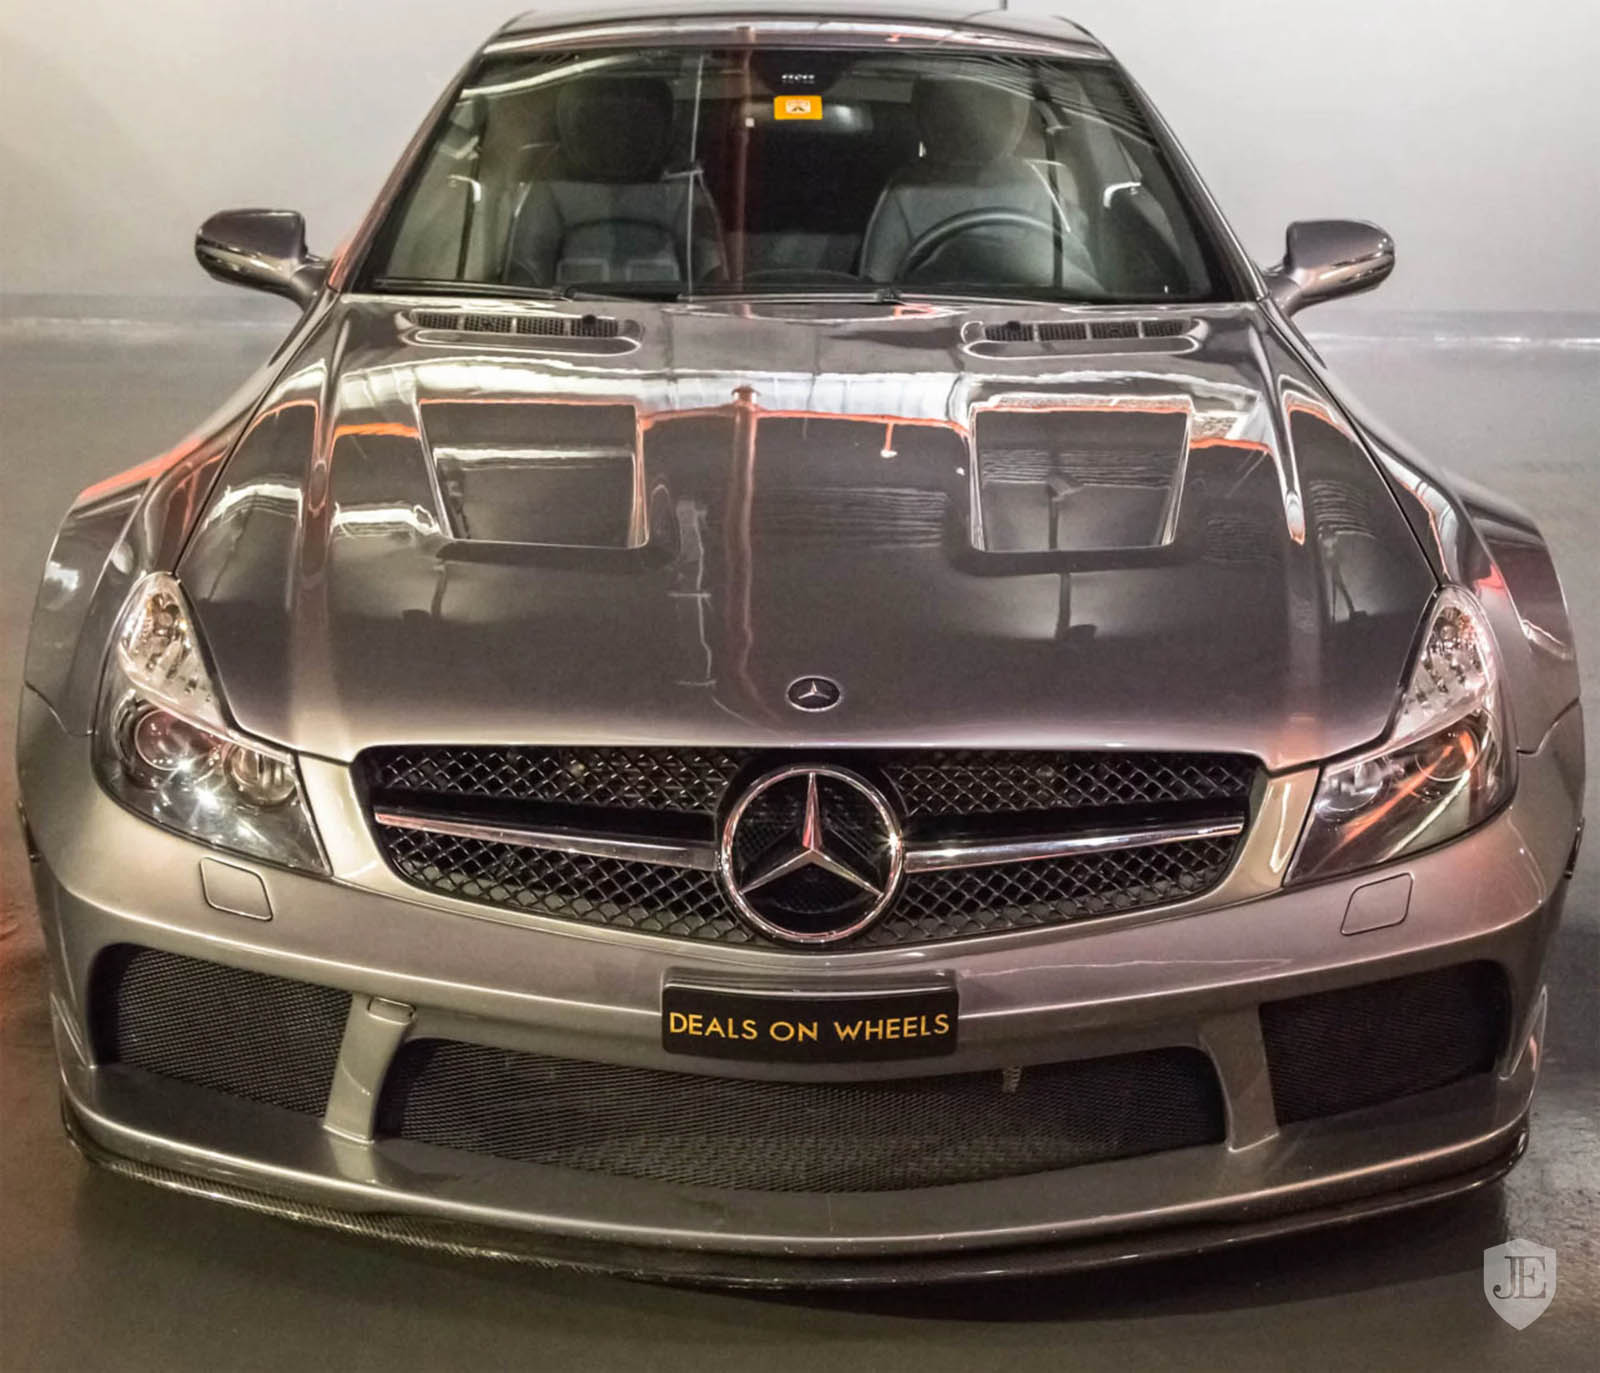 Dubai Dealer Has Two AMG Blacks While You Wait For A New One